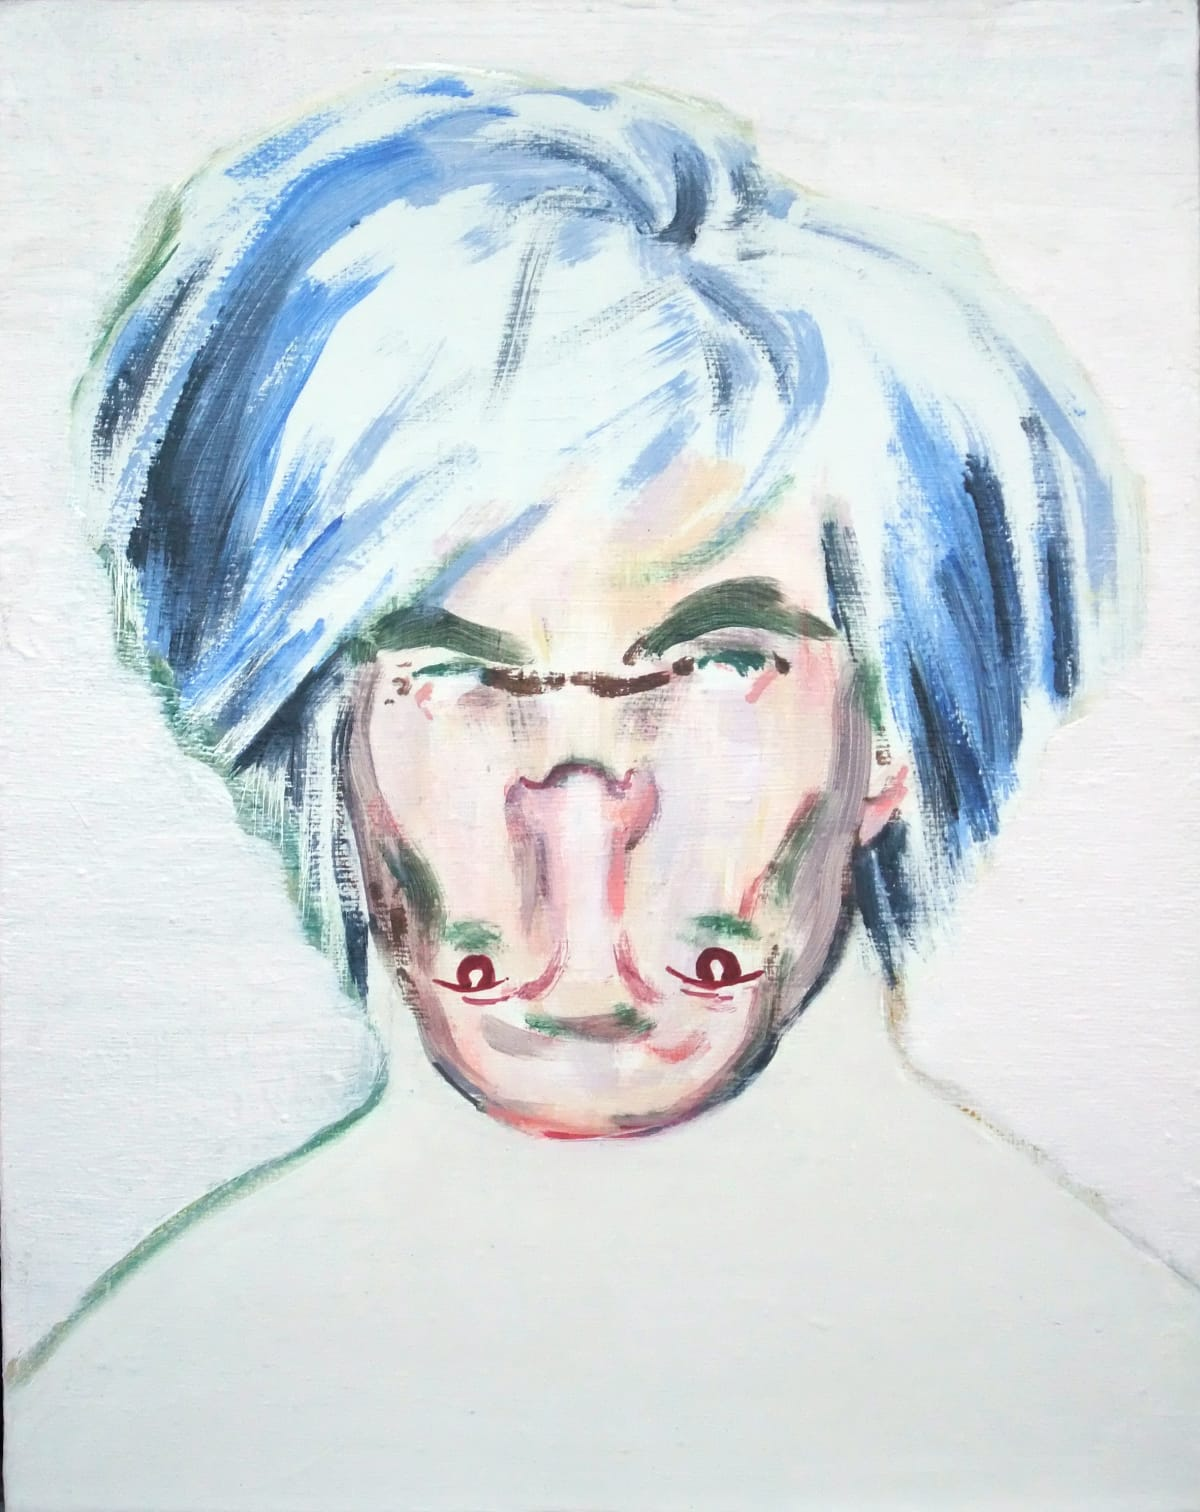 Darren Coffield Shockheaded Warhol I [Study], 2010 Acrylic on canvas 39 x 32 cm 15 3/8 x 12 5/8 in